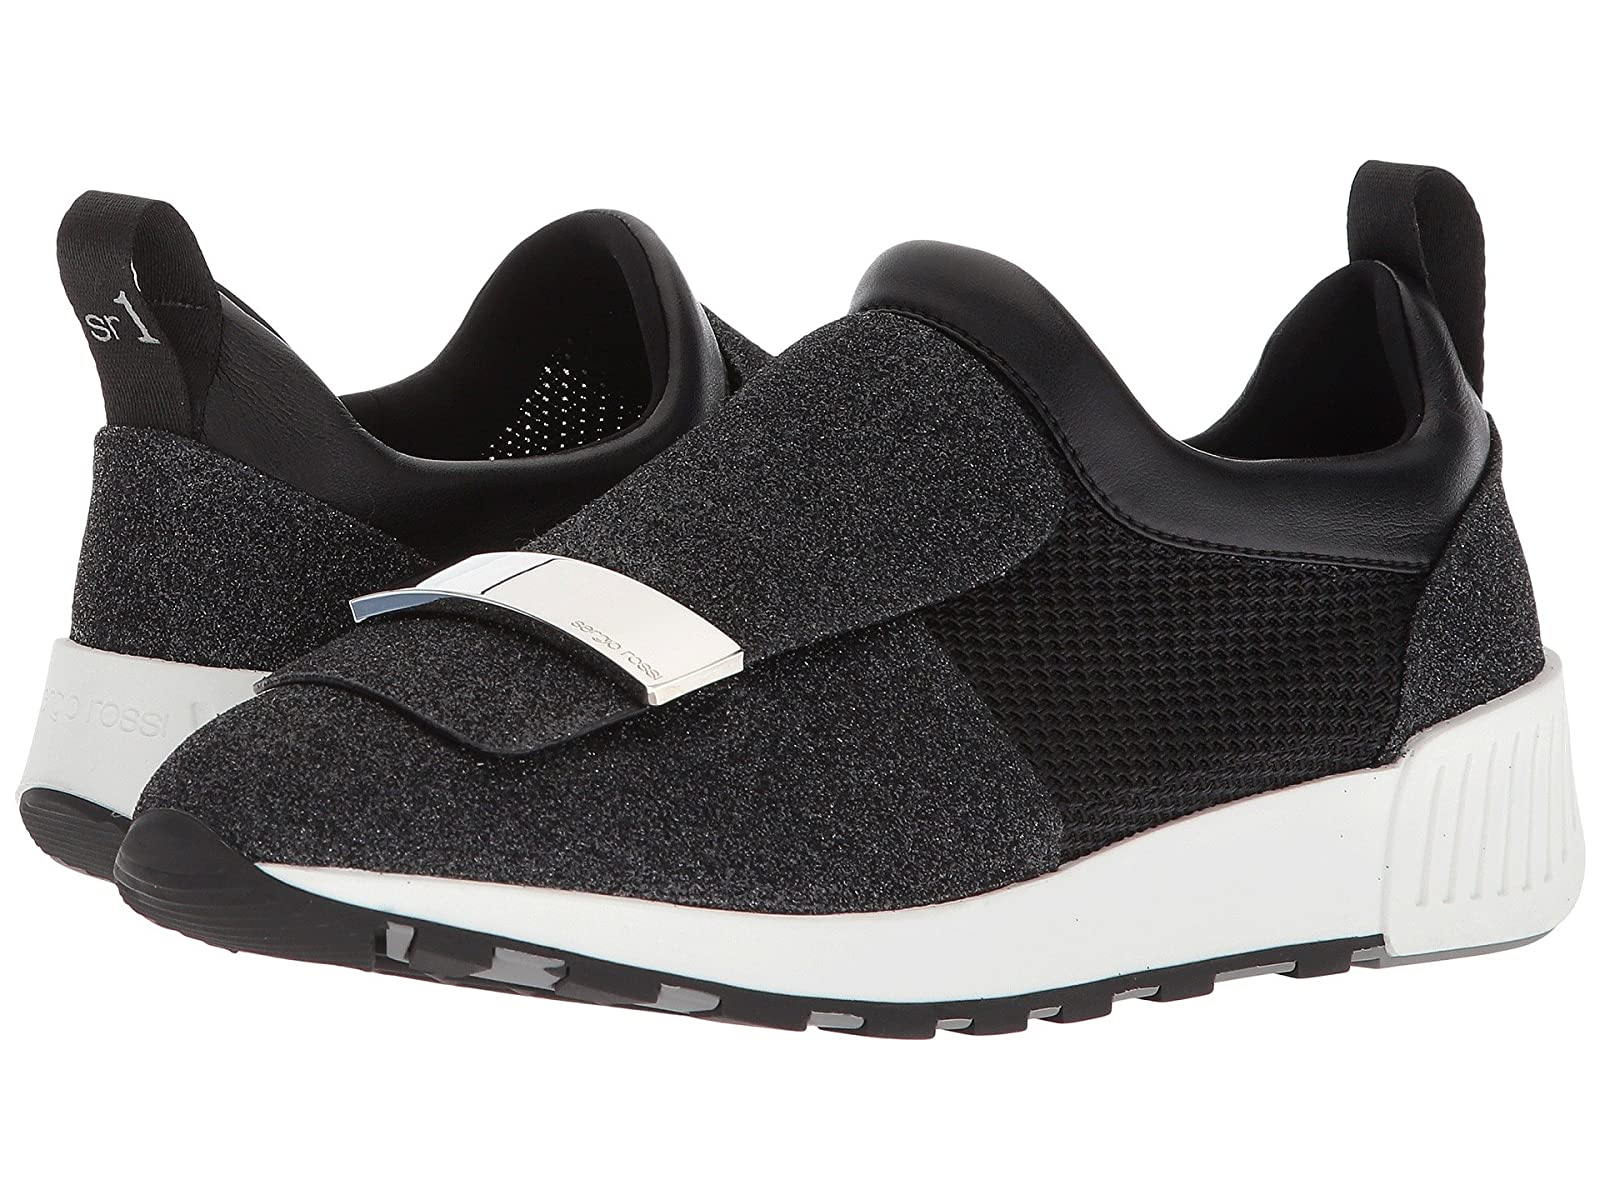 Sergio Rossi A80840-MFN302Atmospheric grades have affordable shoes